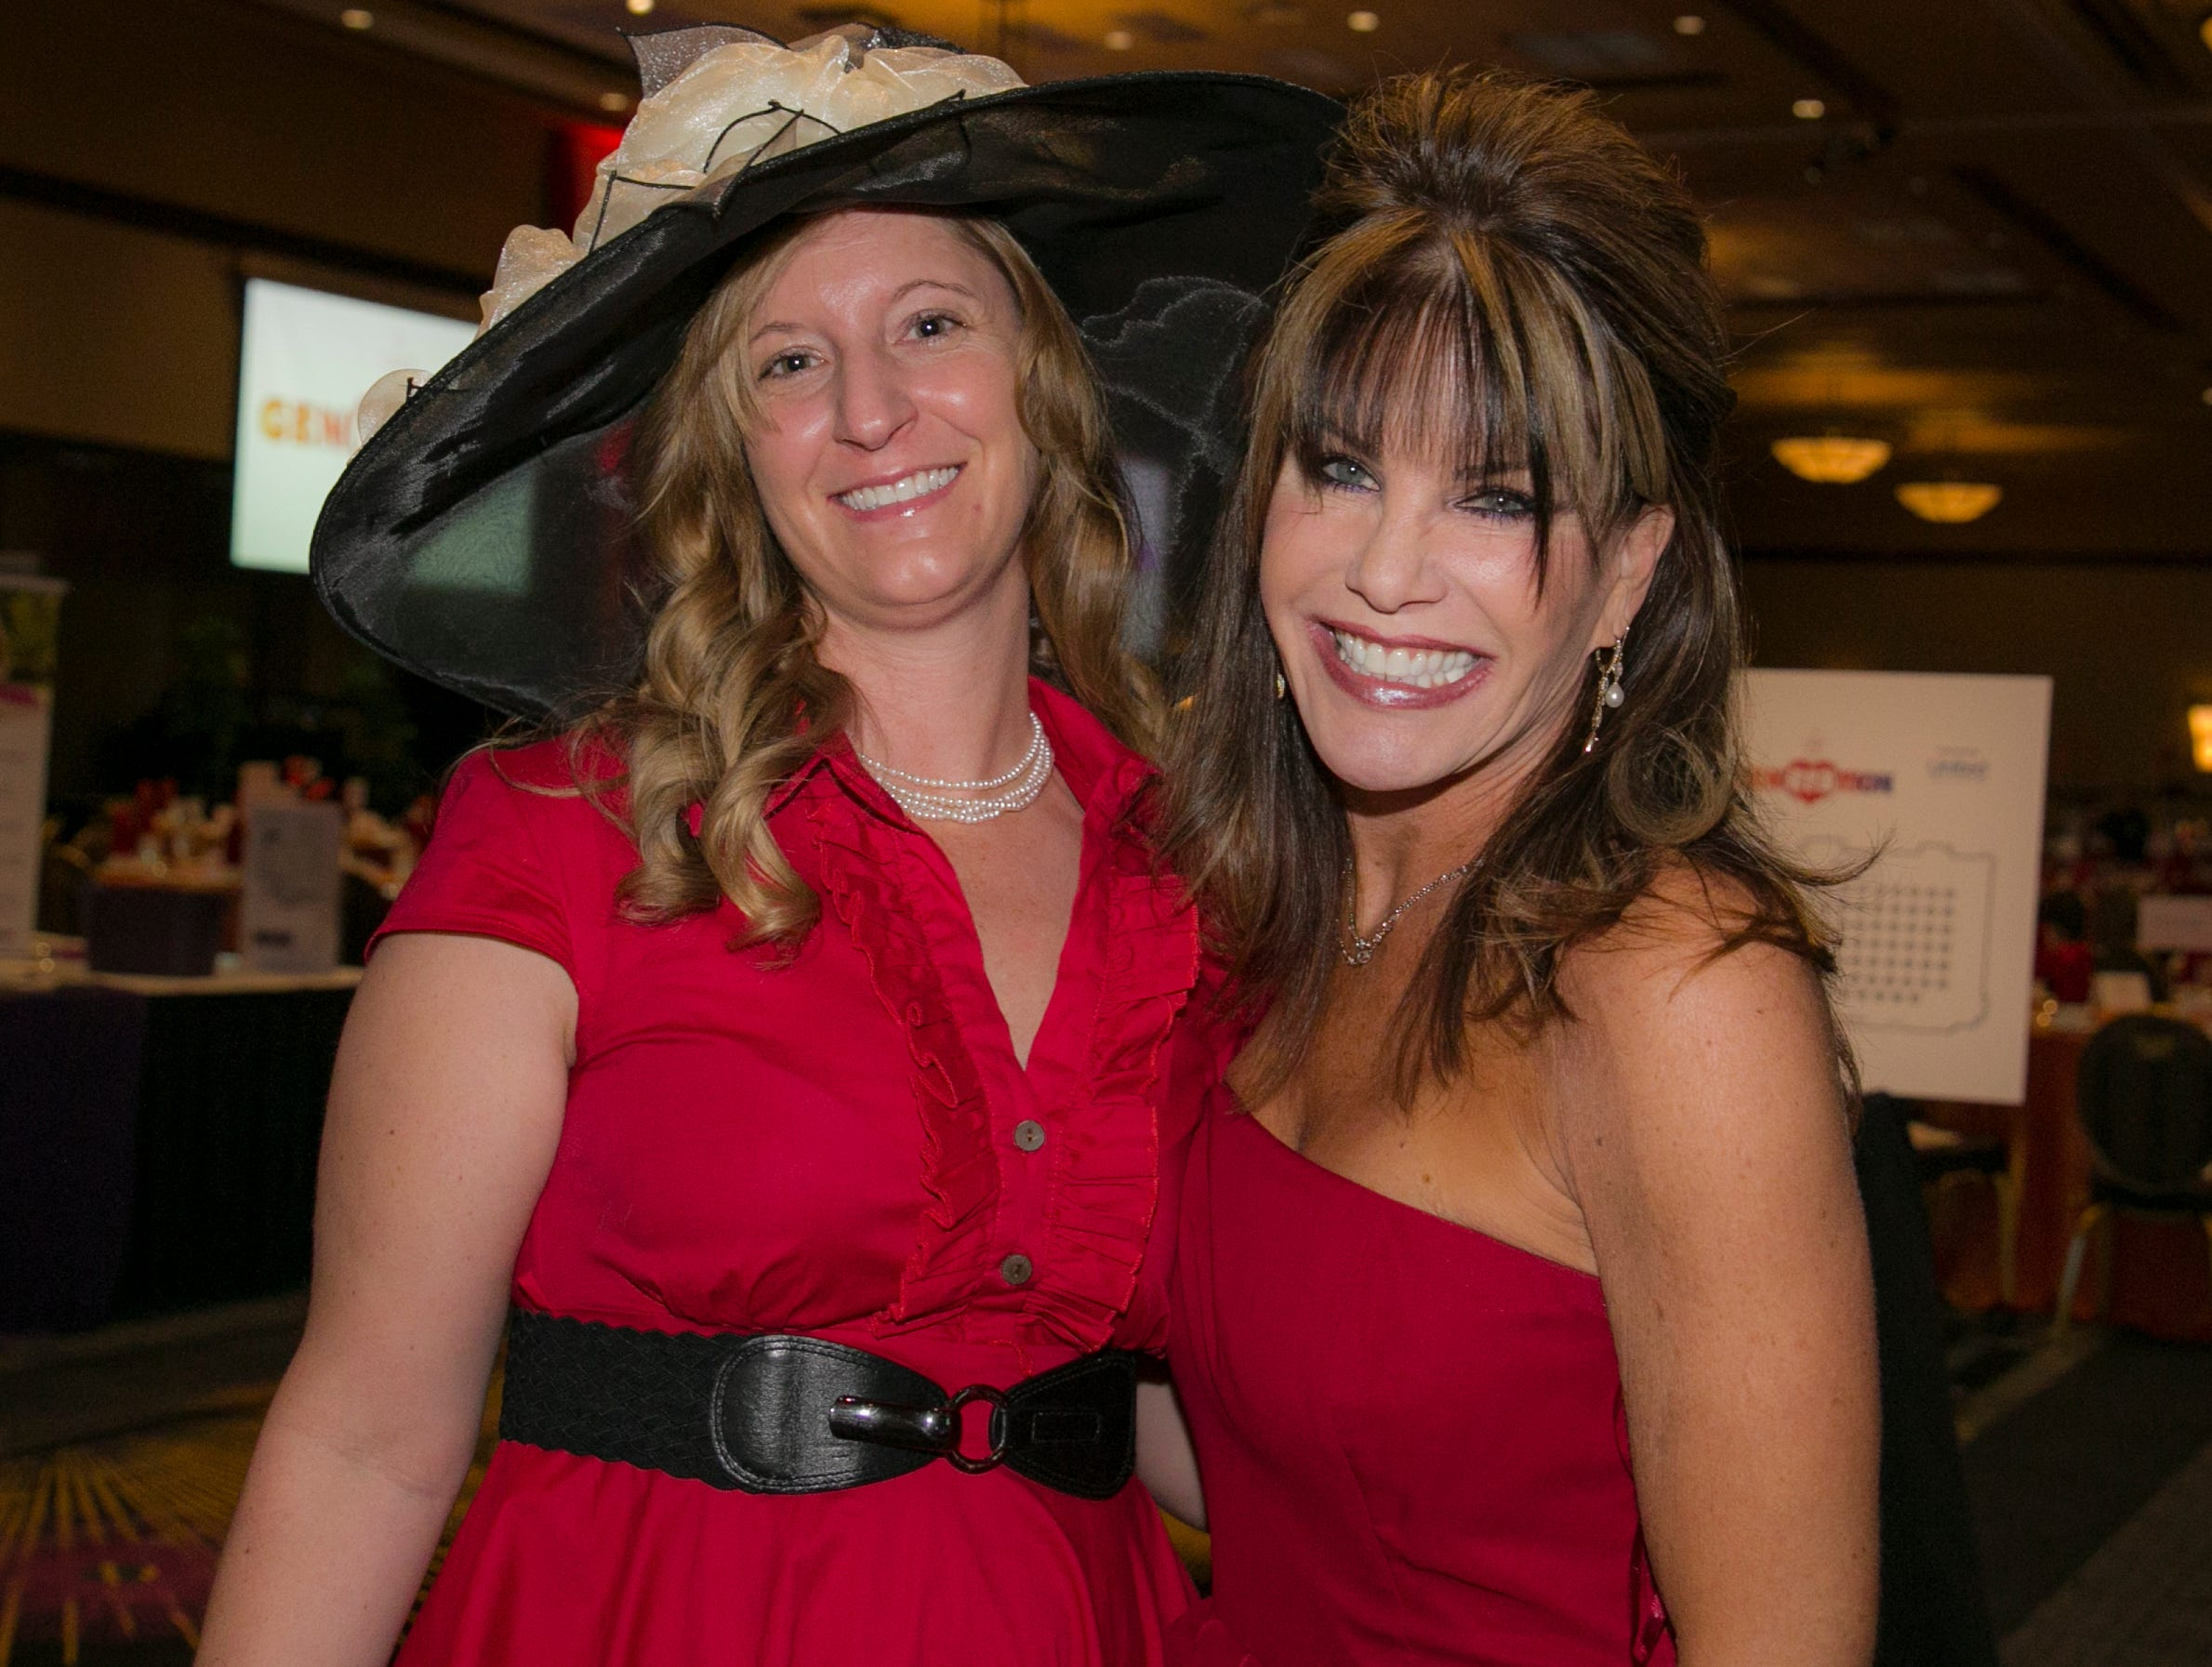 Dr. Molly Torvinen and Leslie Billow during the 15th Annual Go Red for Women Luncheon on Friday,March 1, 2019 held at the downtown Reno Ballroom.